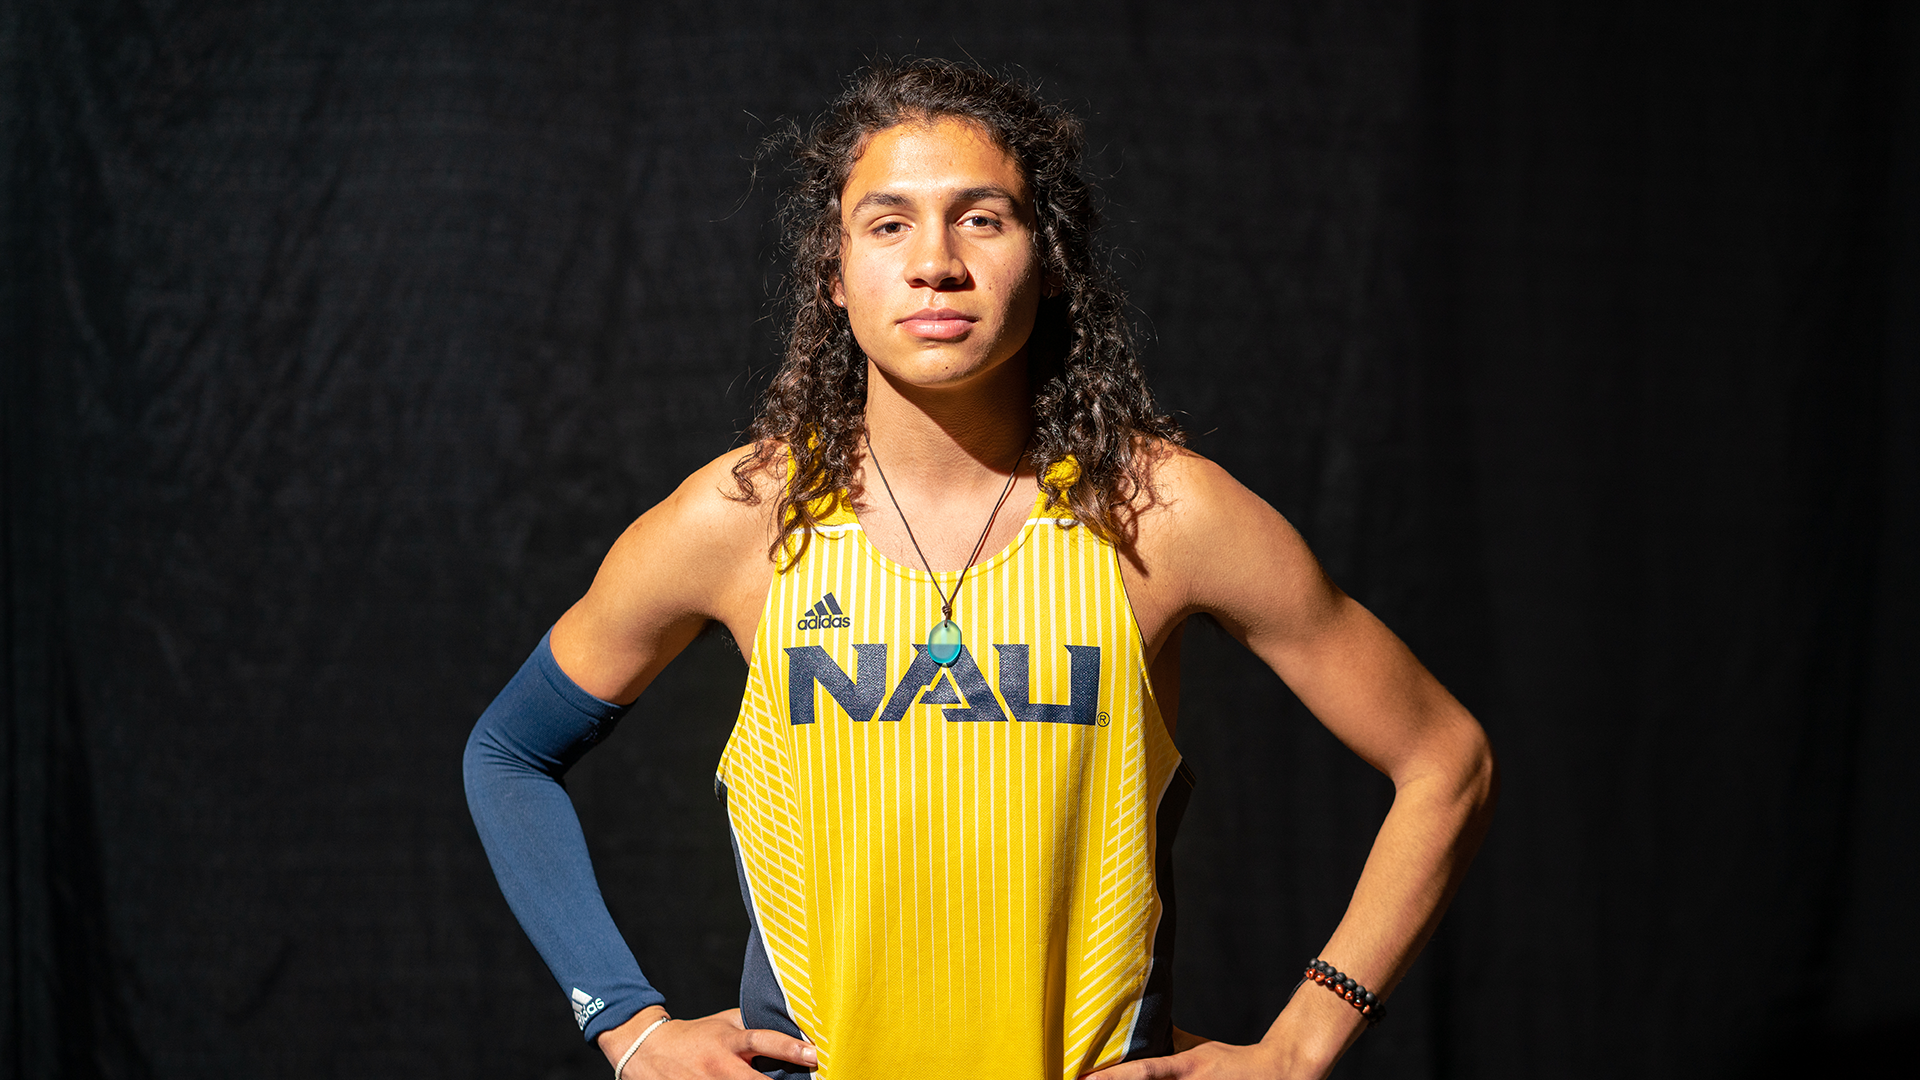 Beamish, Day and Grijalva to Compete at Payton Jordan Invitational